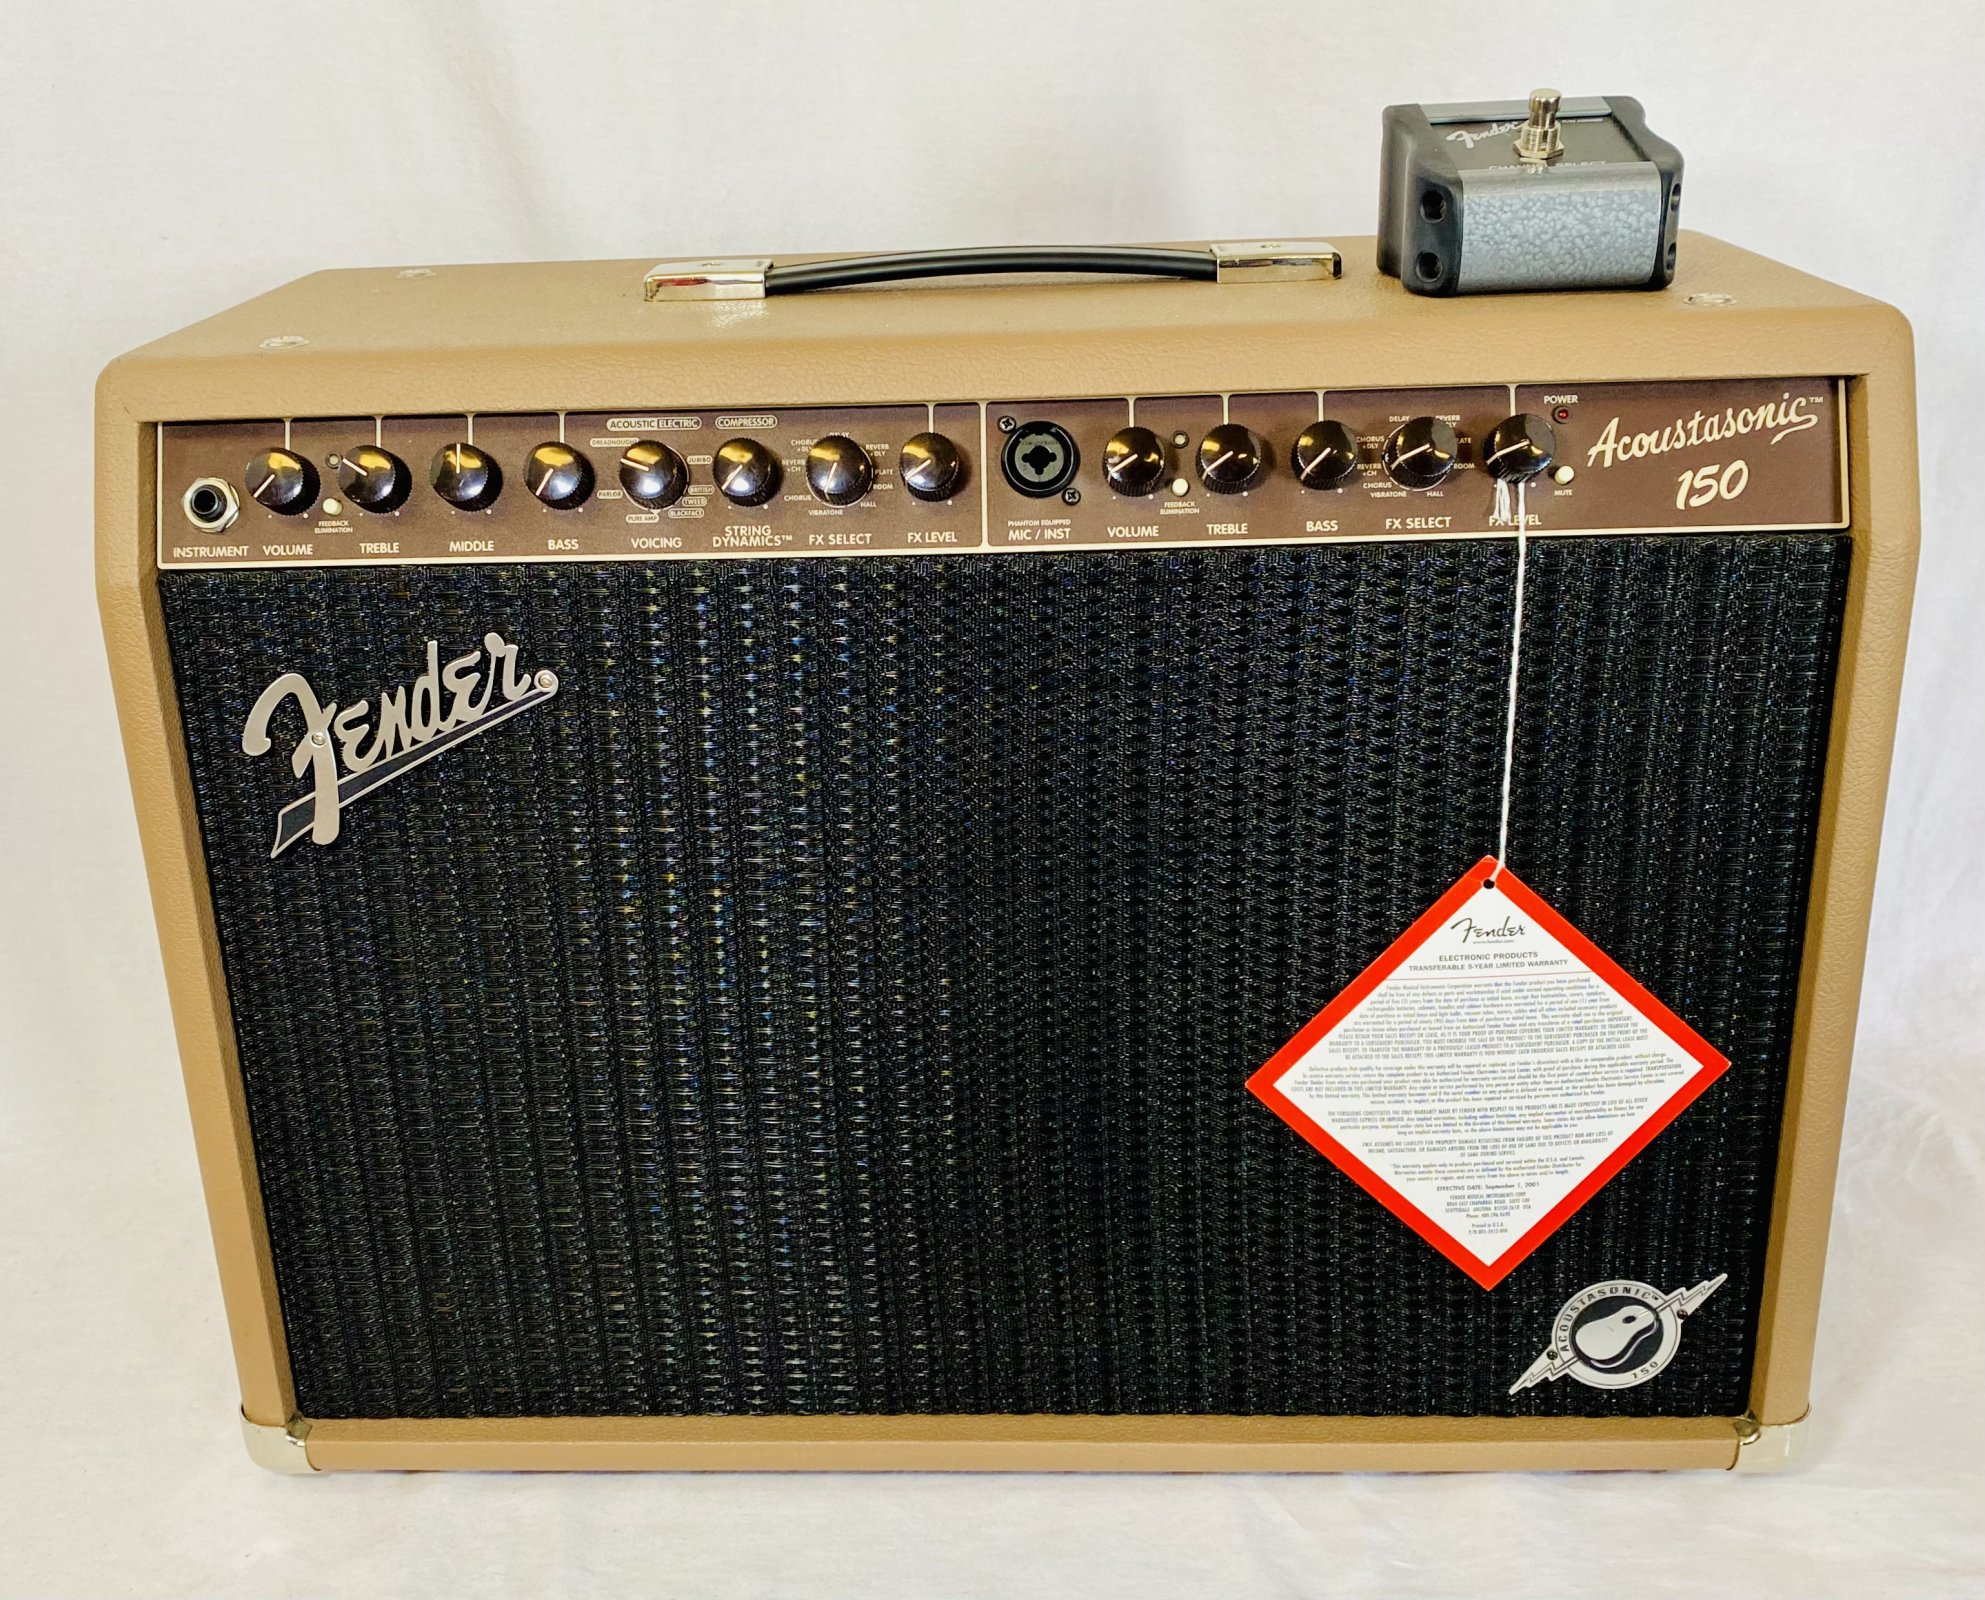 FENDER ACOUSTASONIC 150 2X8 2 CHANNEL AMPLIFIER WITH FOOTSWITCH